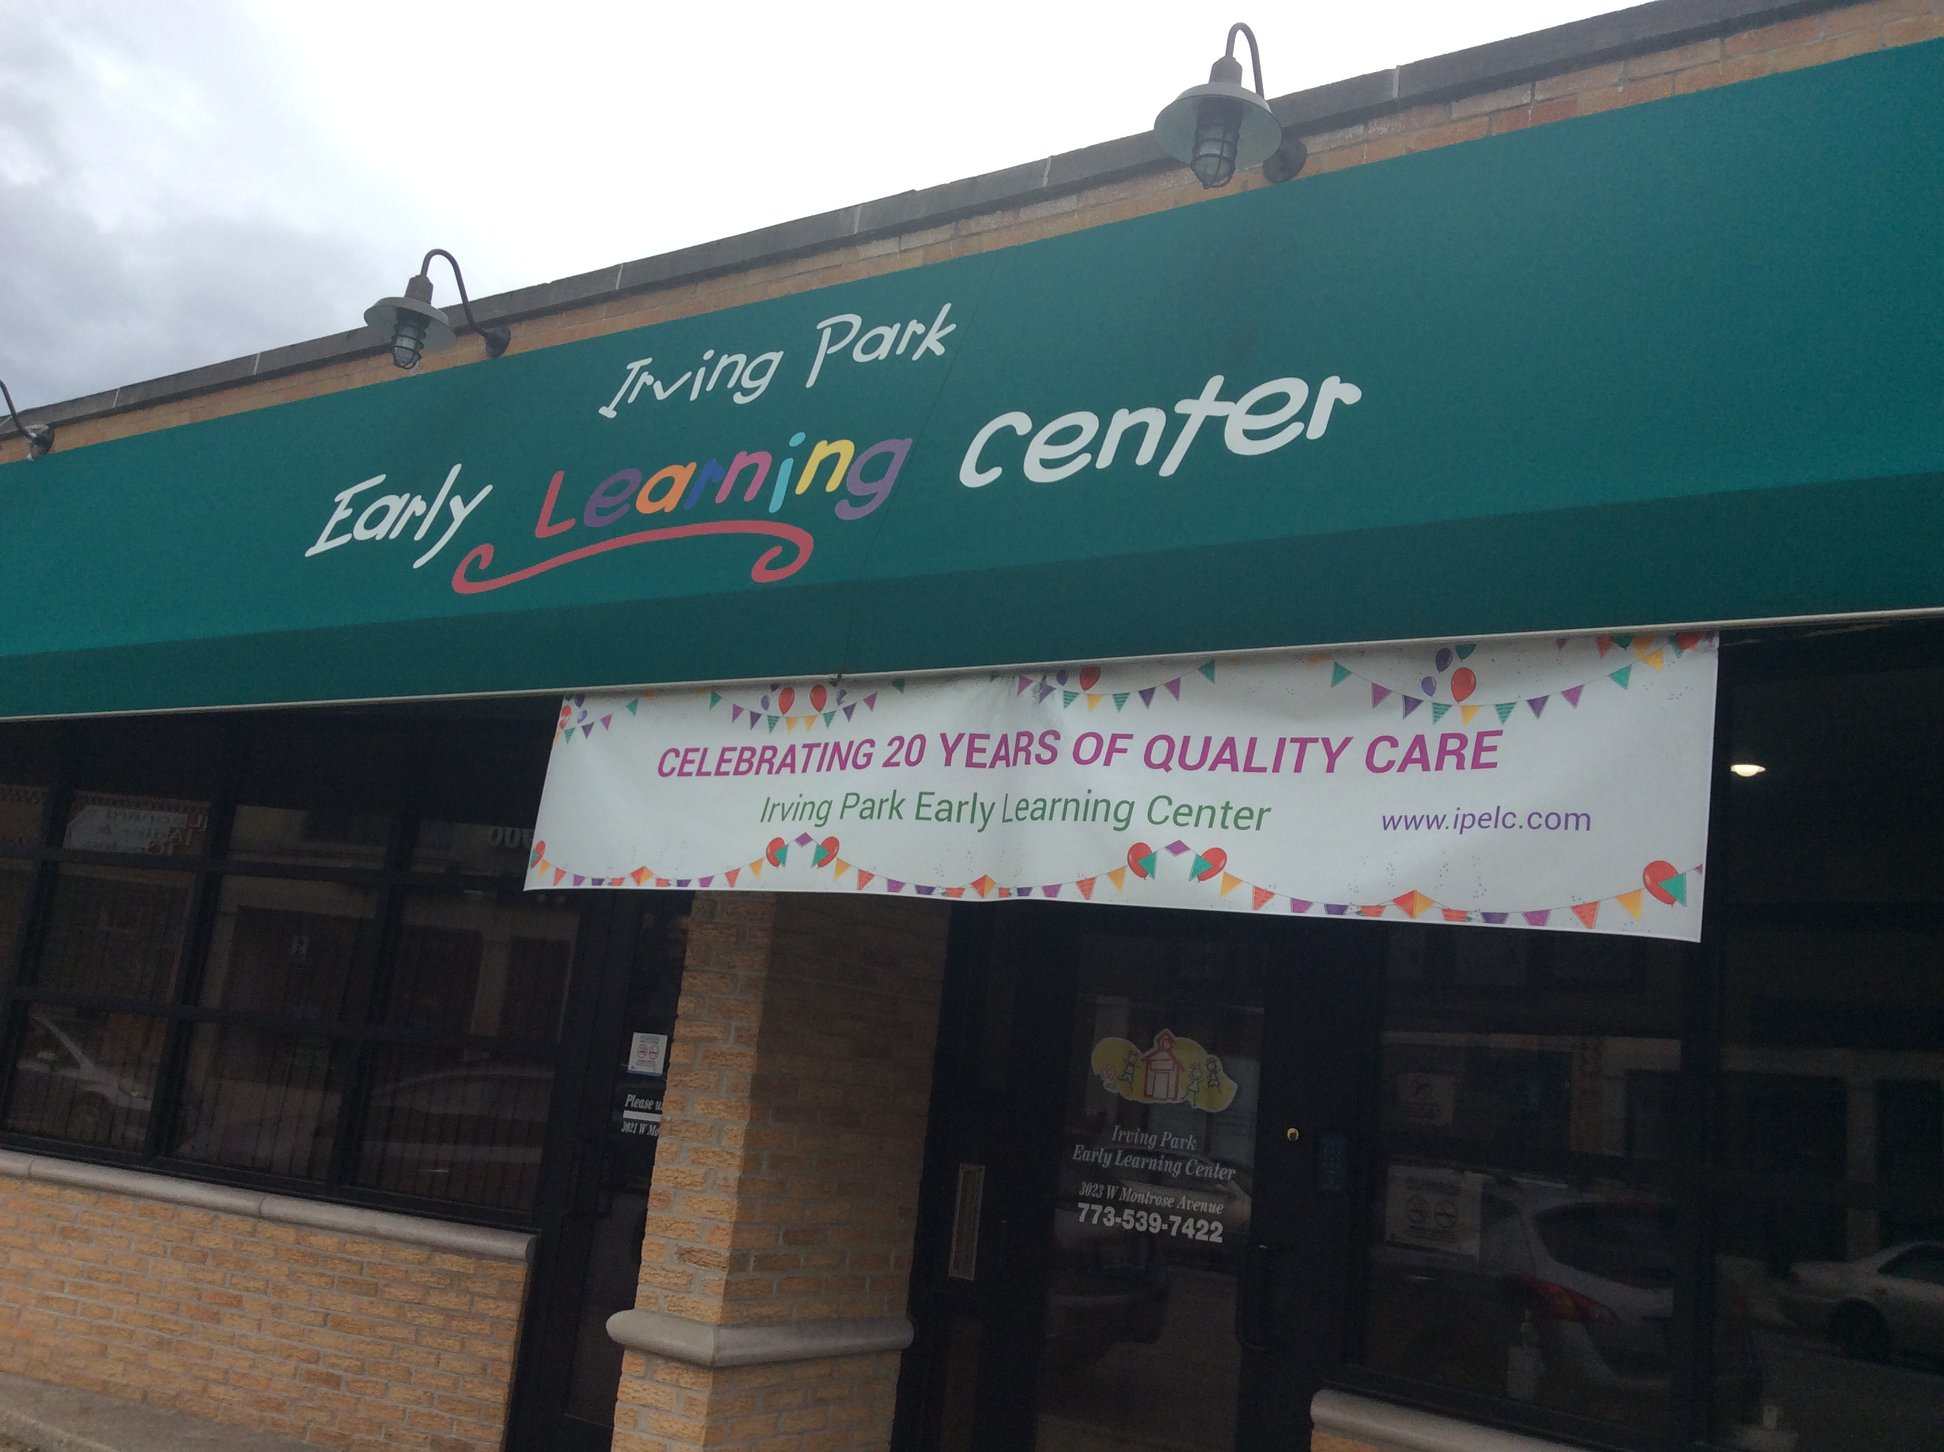 Chicago, Day Care, Illinois, IPELC, Irving Park Early Learning Center,